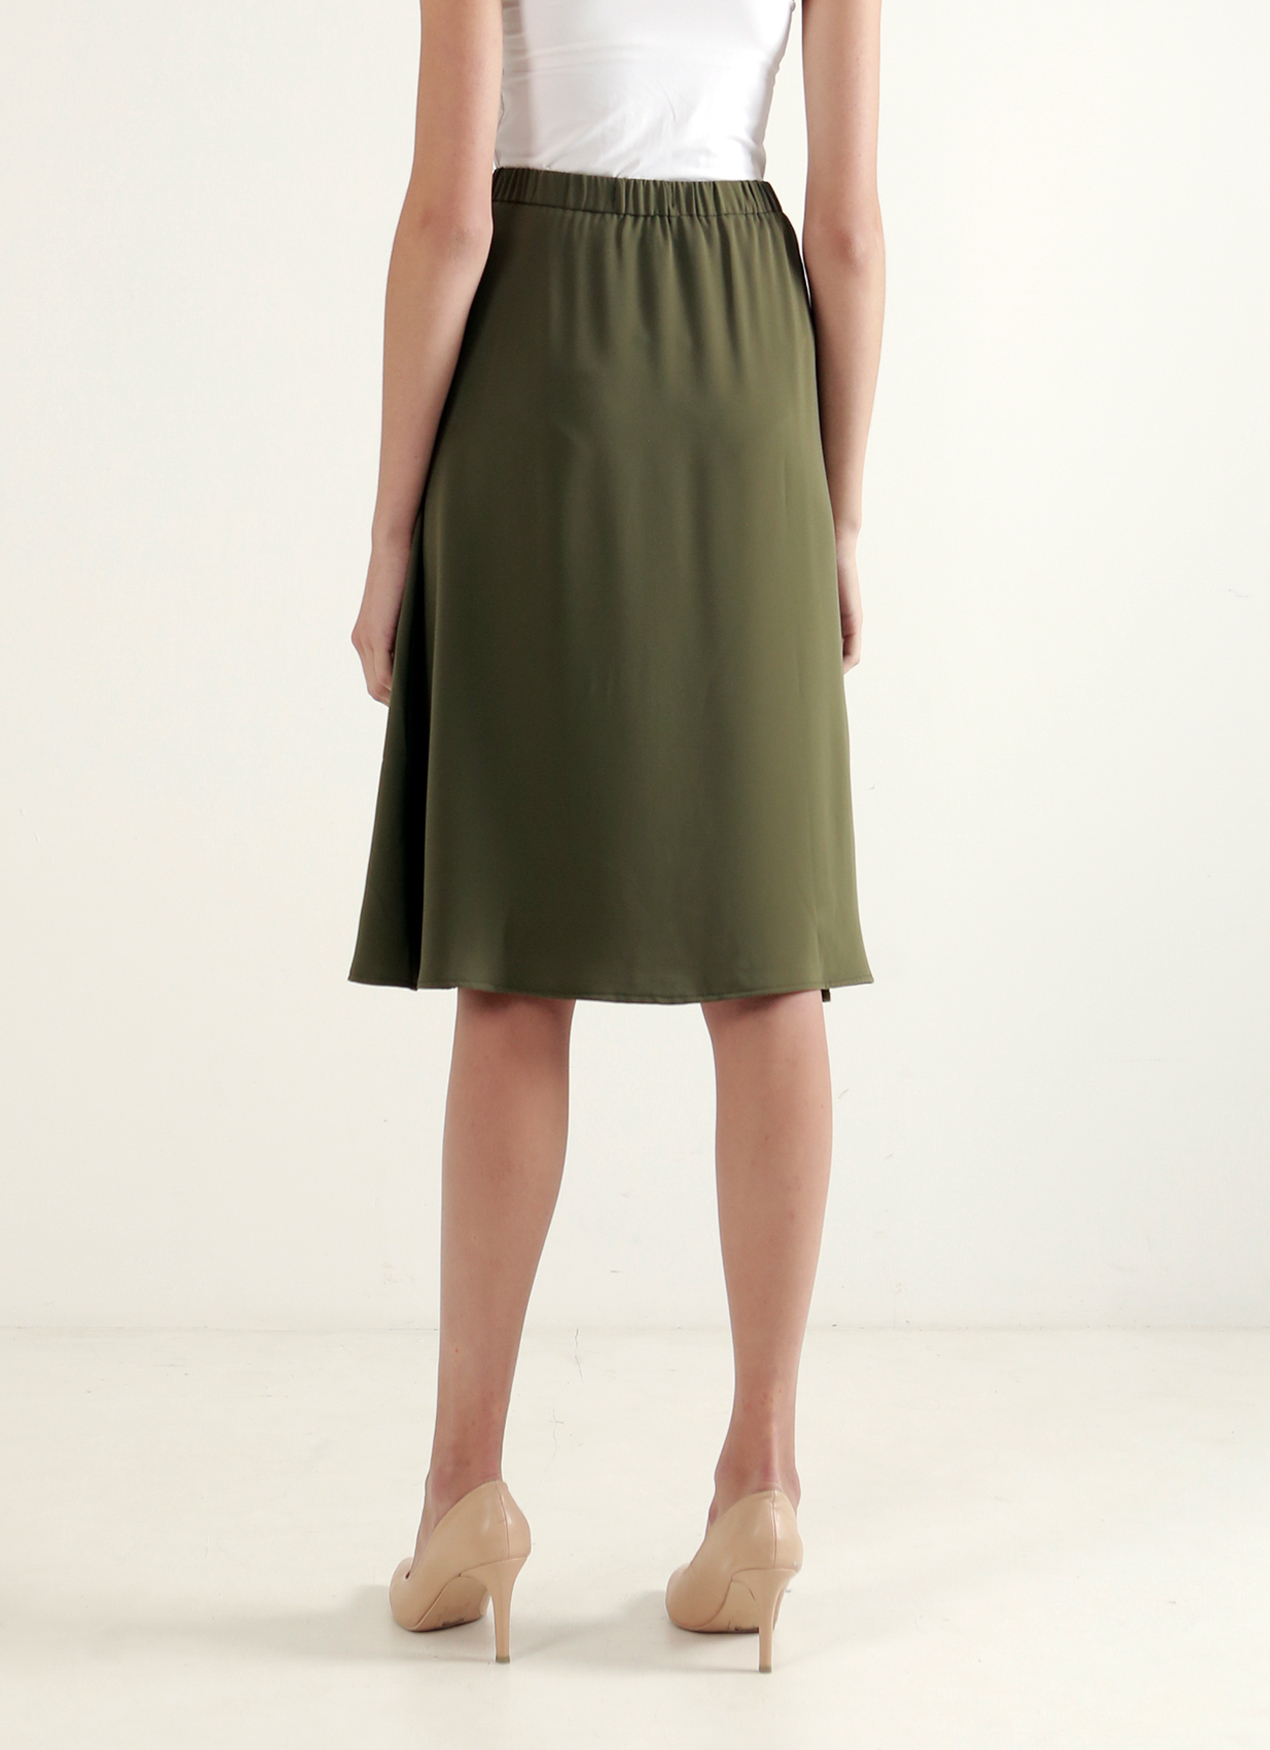 Wastu Gable Snap Button skirt - Army